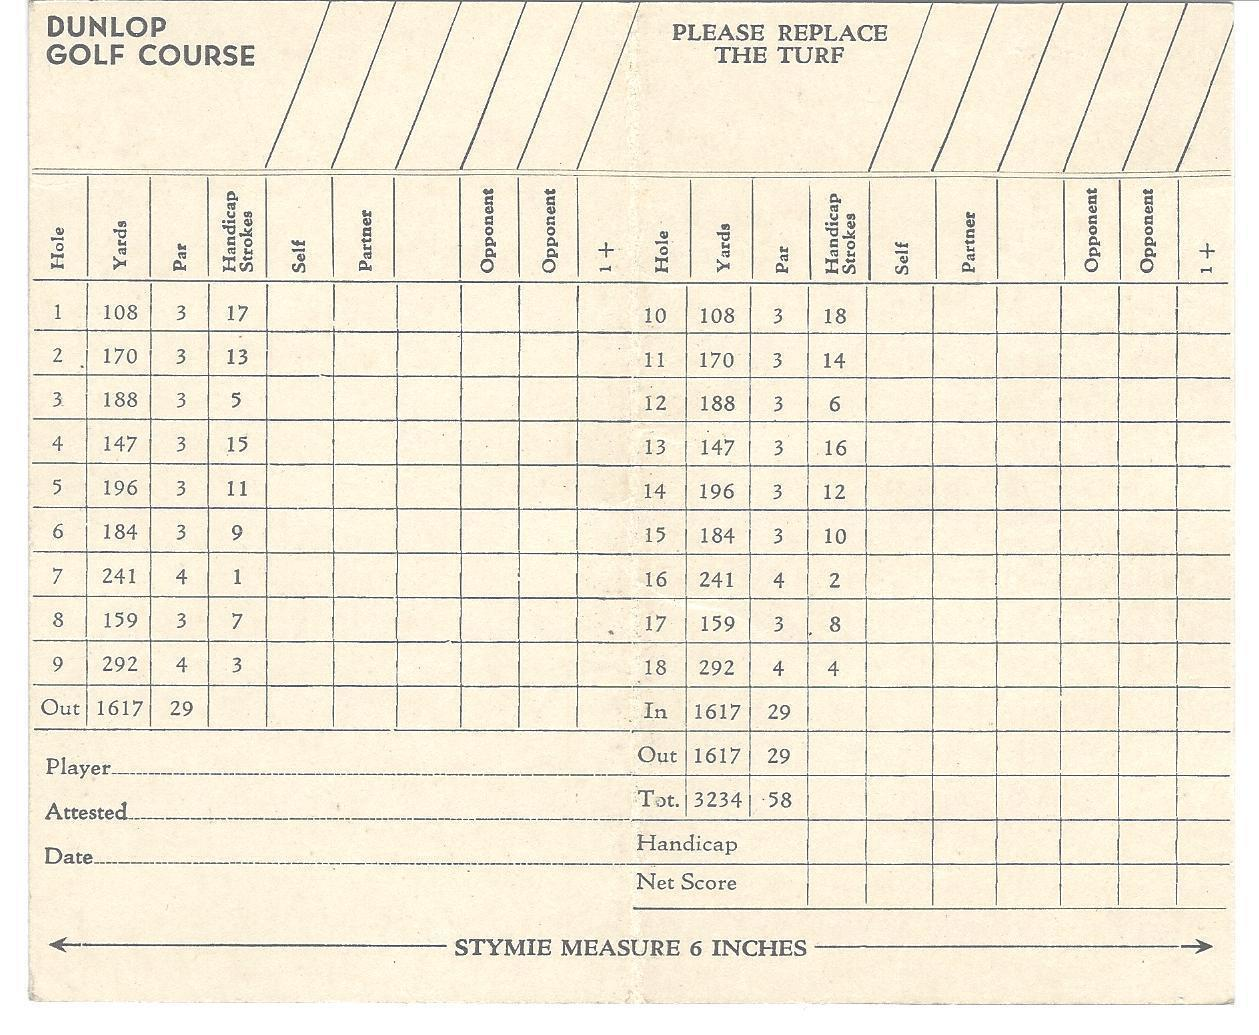 Dunlop Golf Course, scorecard2 (c1930).jpg